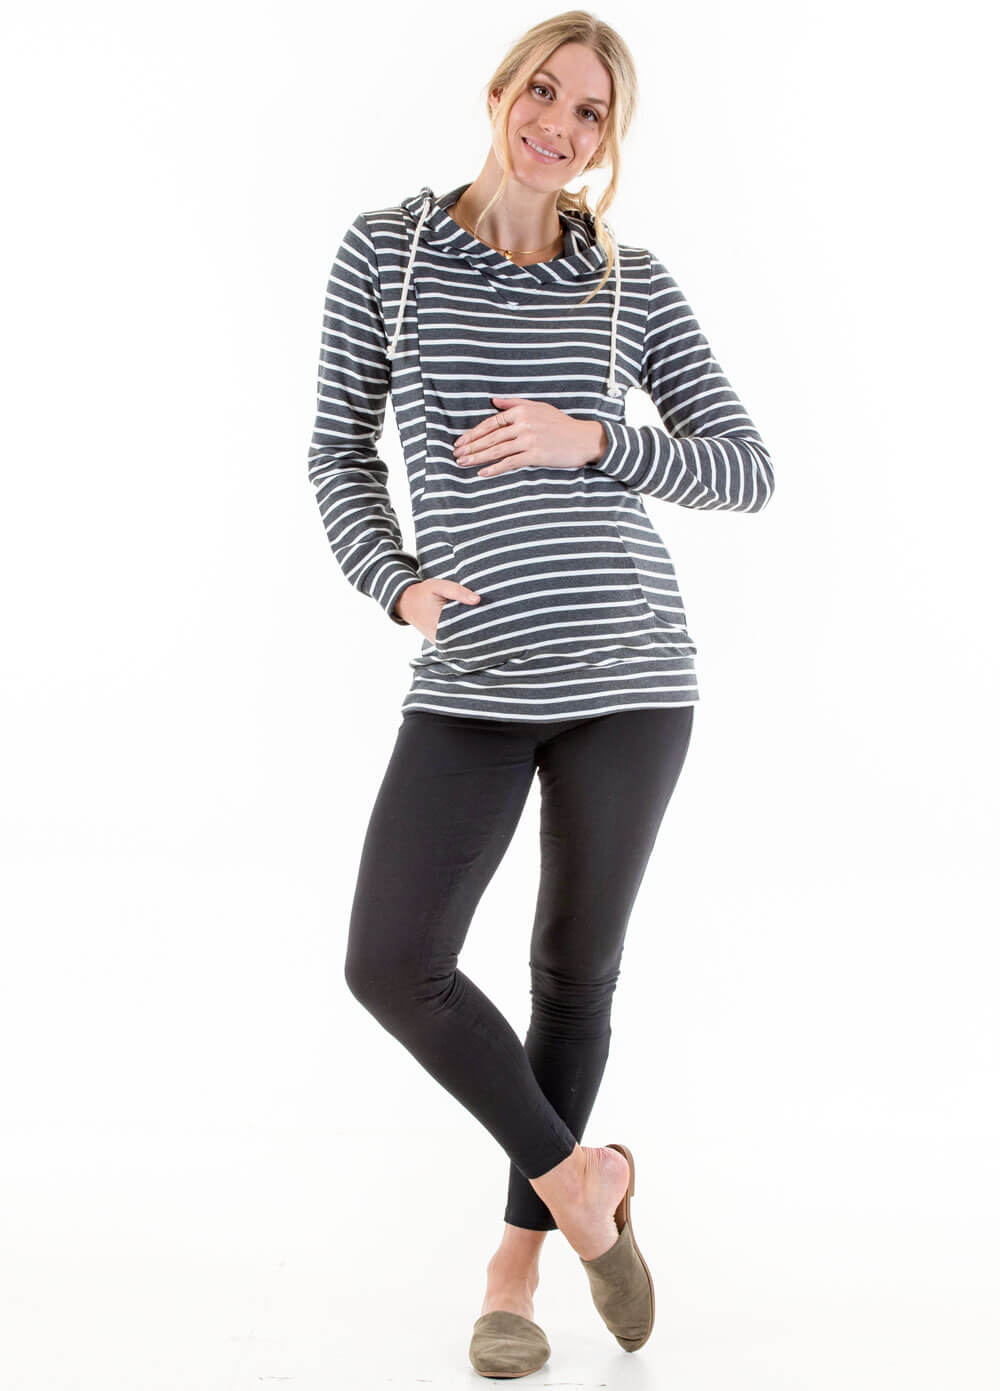 Danze Maternity Nursing Hoodie in Charcoal Stripe by Lait & Co